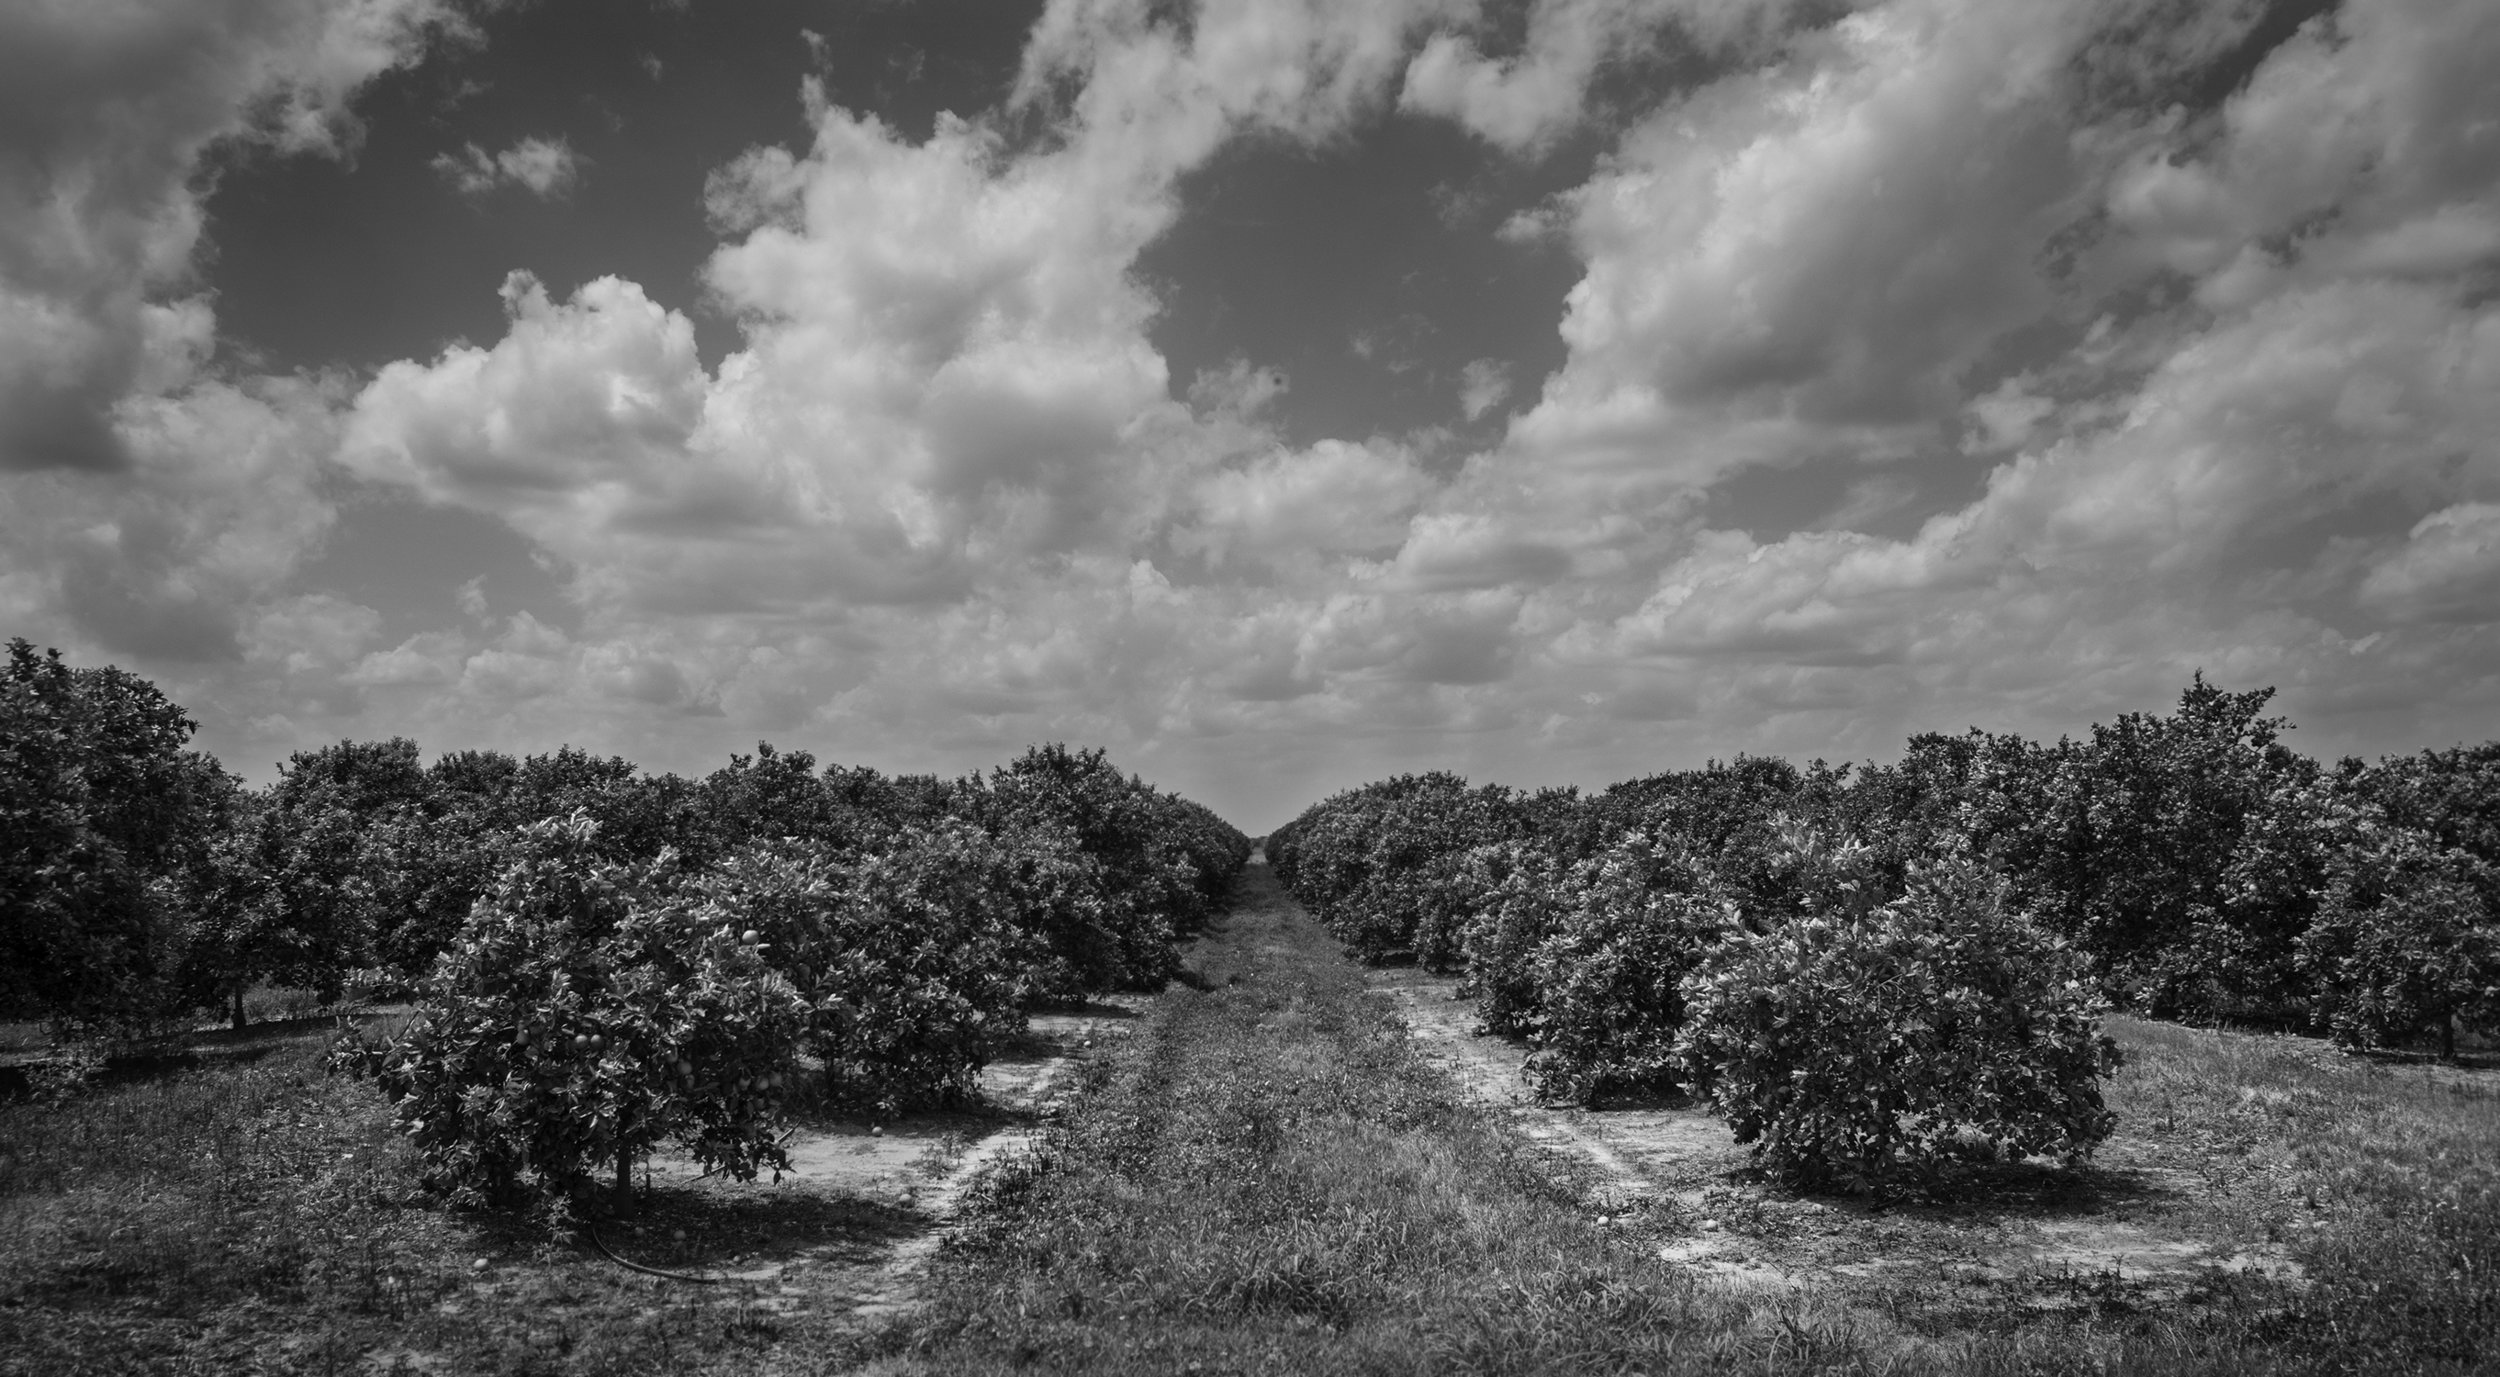 The fruit from this orange grove provides juice and jobs for people, but for thousands of years it was Florida dry prairie and perhaps home to Florida Grasshopper Sparrows.